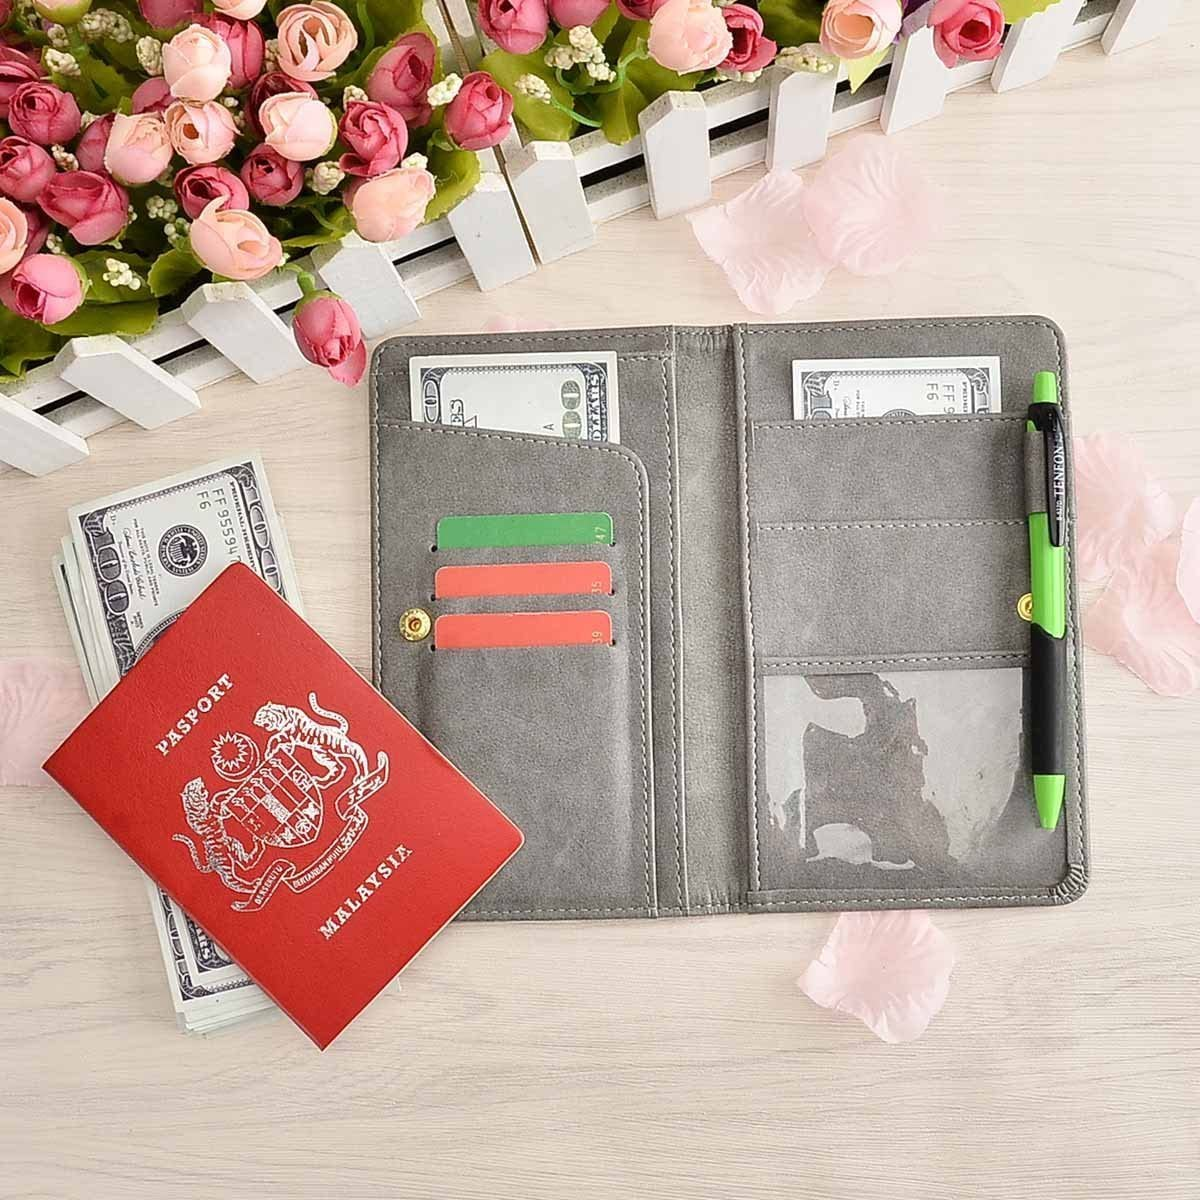 ID Card YRLED Canvas Card Wallet Minimalist Size for Credit Card Cashes Cute Wallet for Ladies